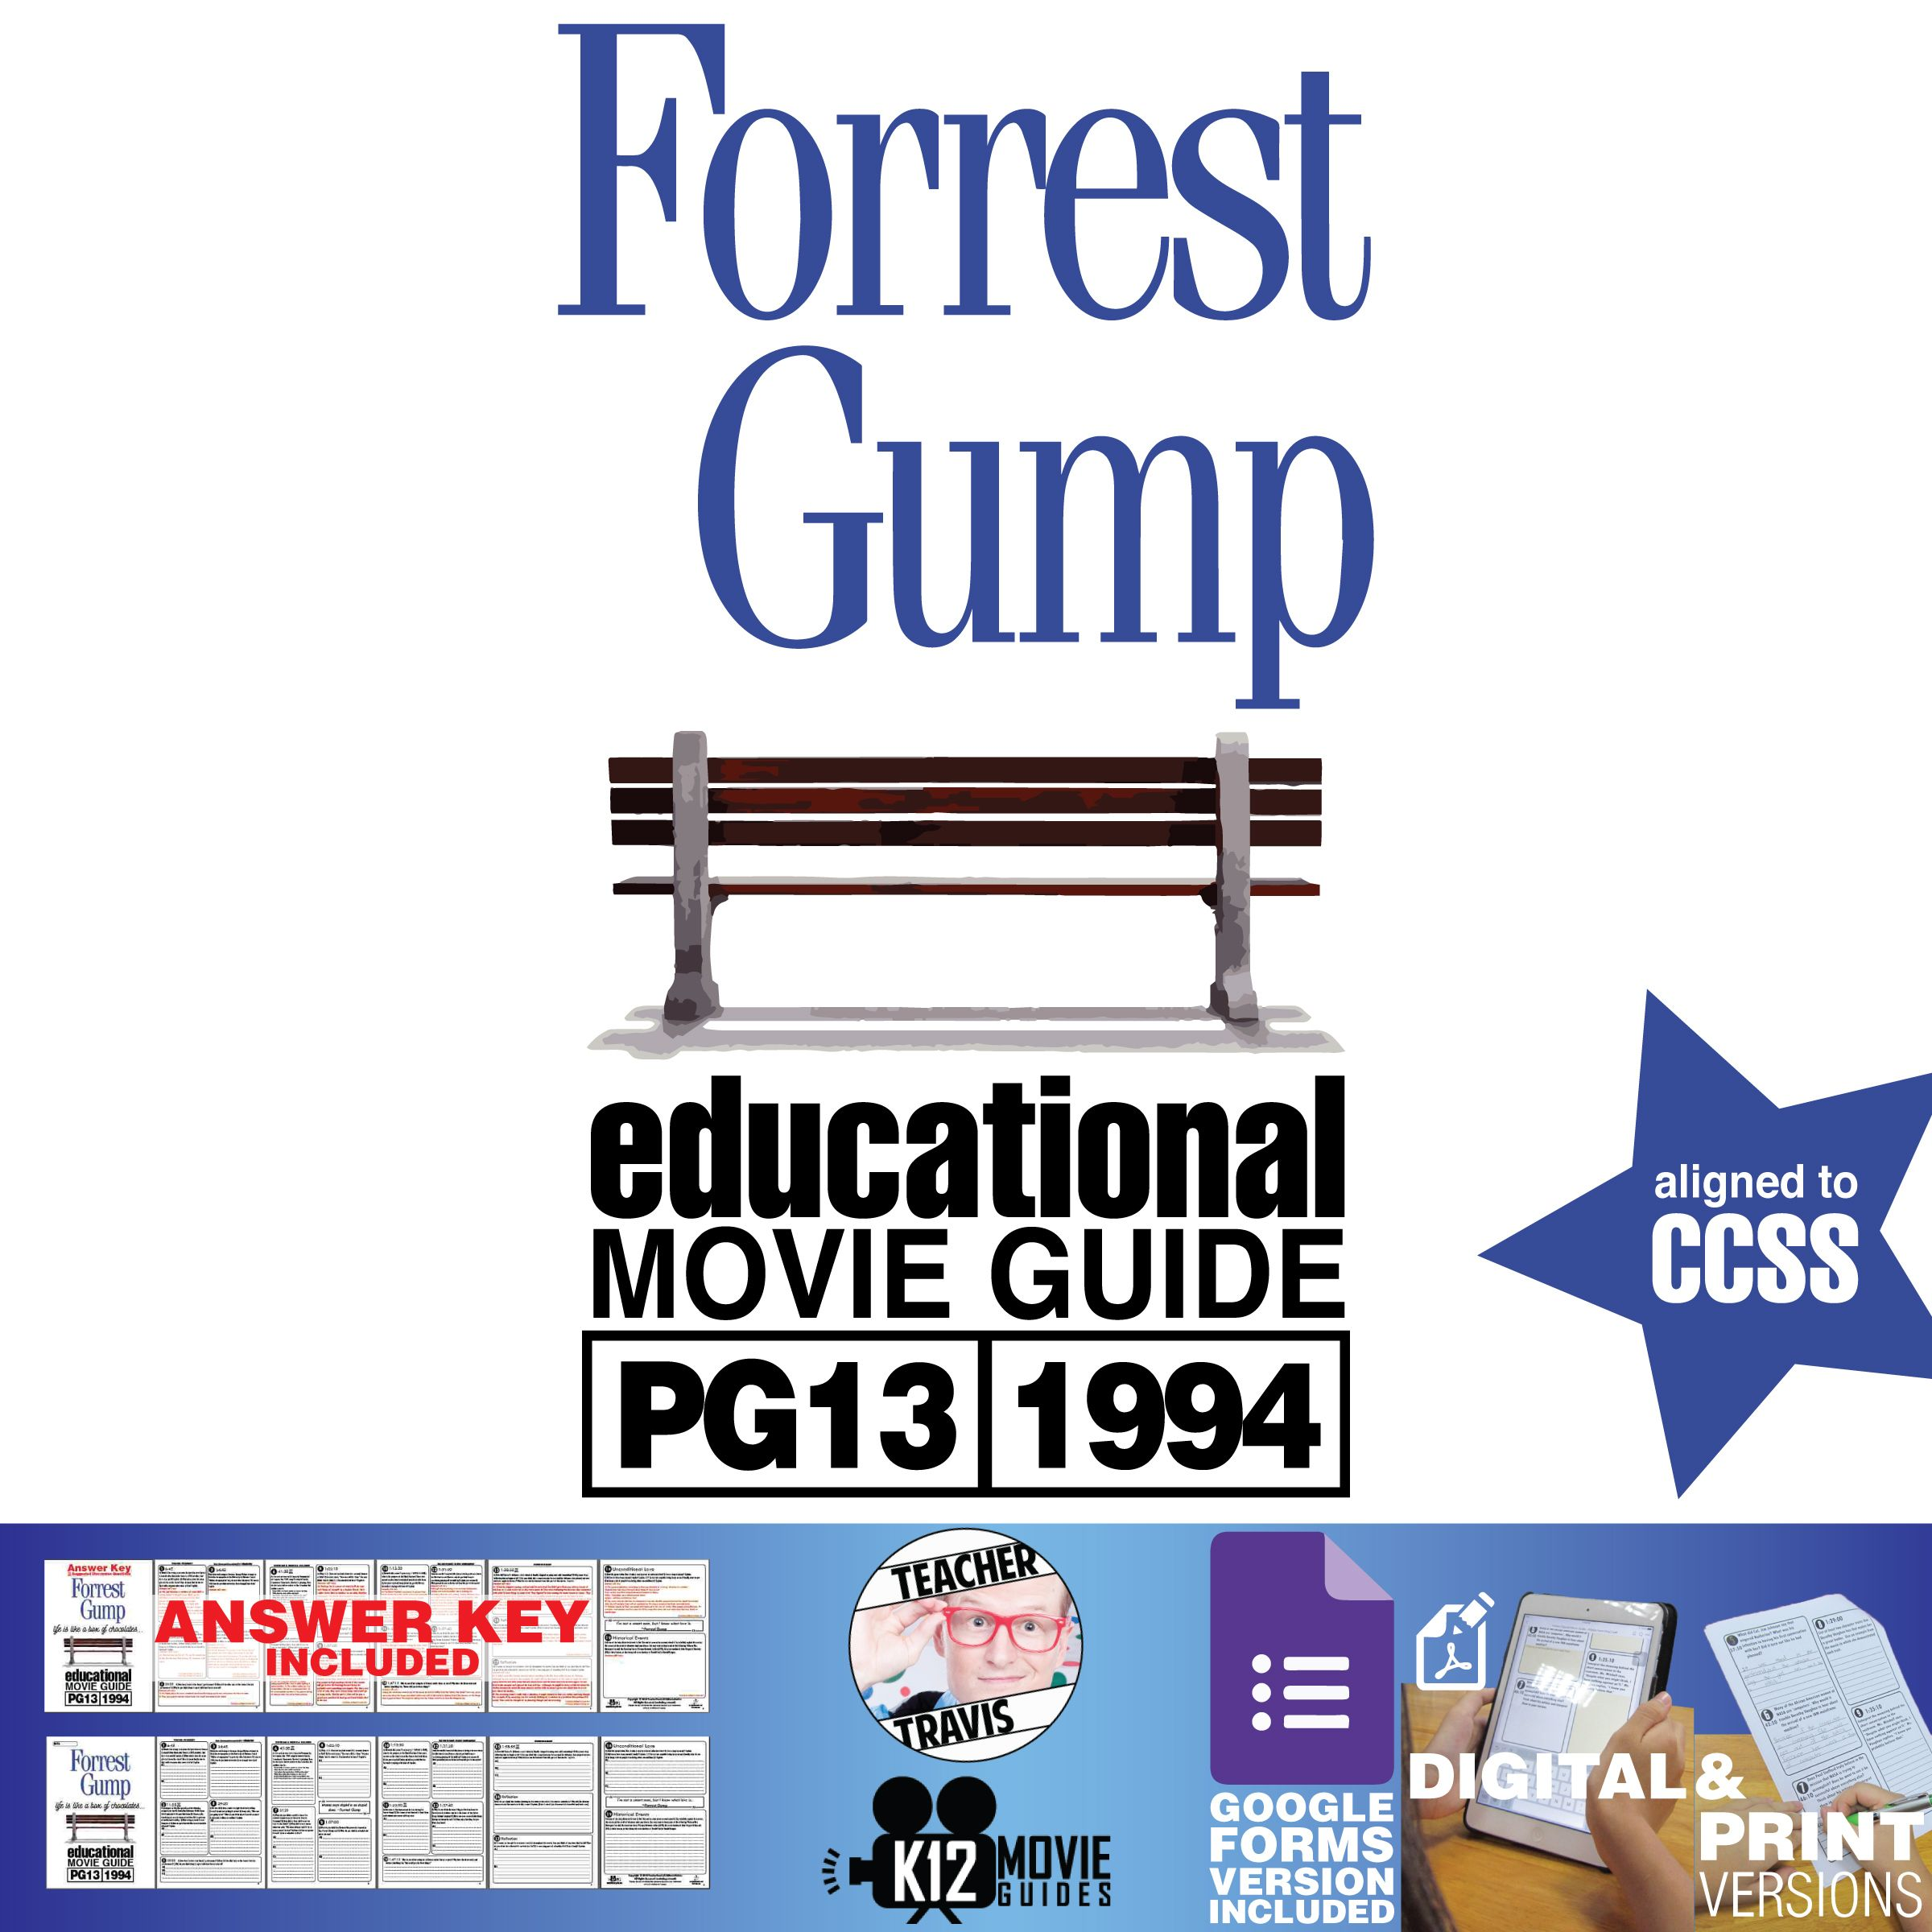 Forrest Gump Movie Guide Questions Worksheet Google Form Pg13 1994 Movie Guide Forrest Gump Forrest Gump Movie